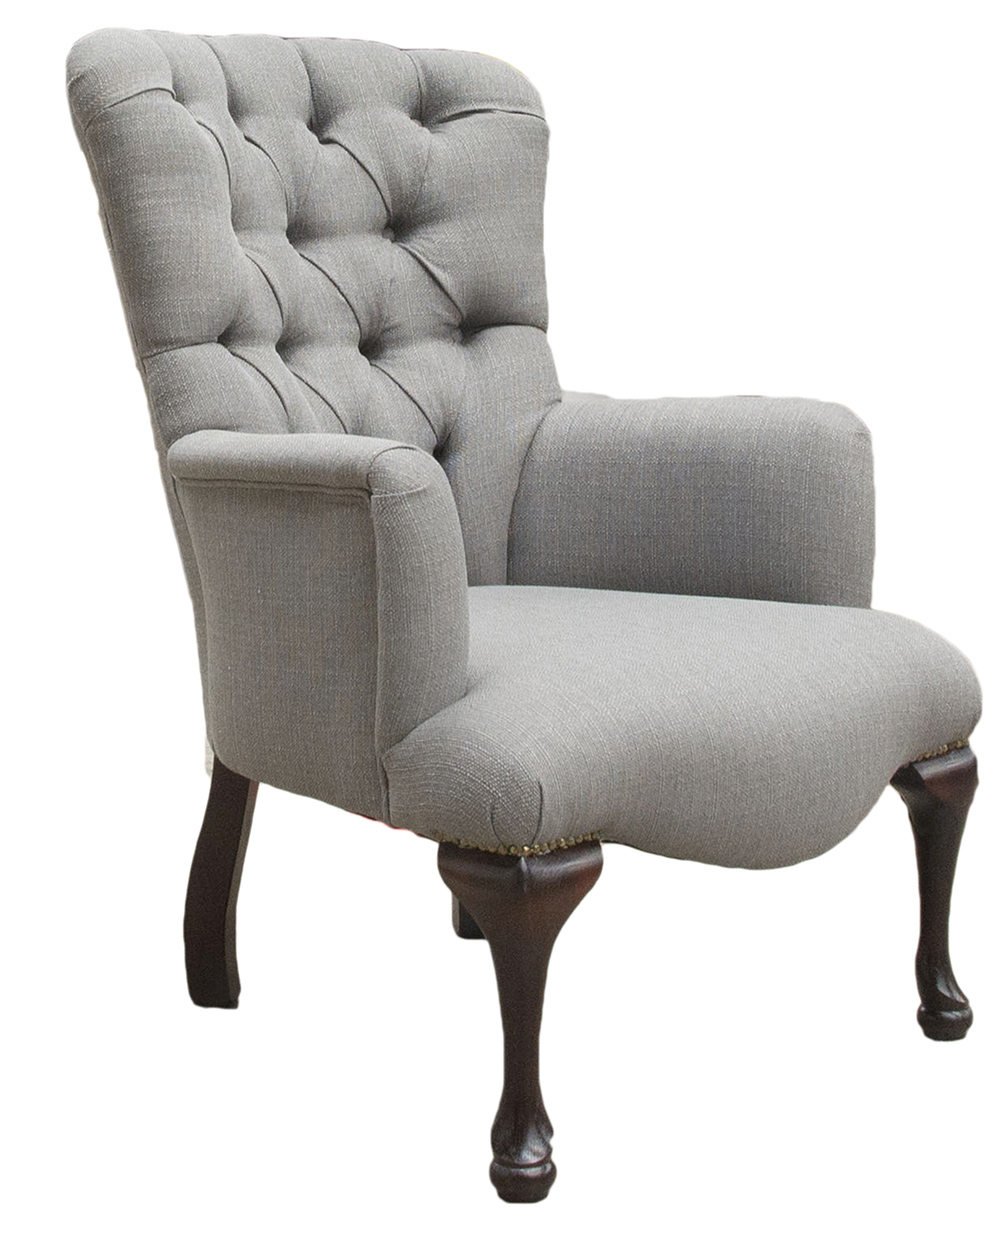 Aisling Chair Side - Aosta Grey